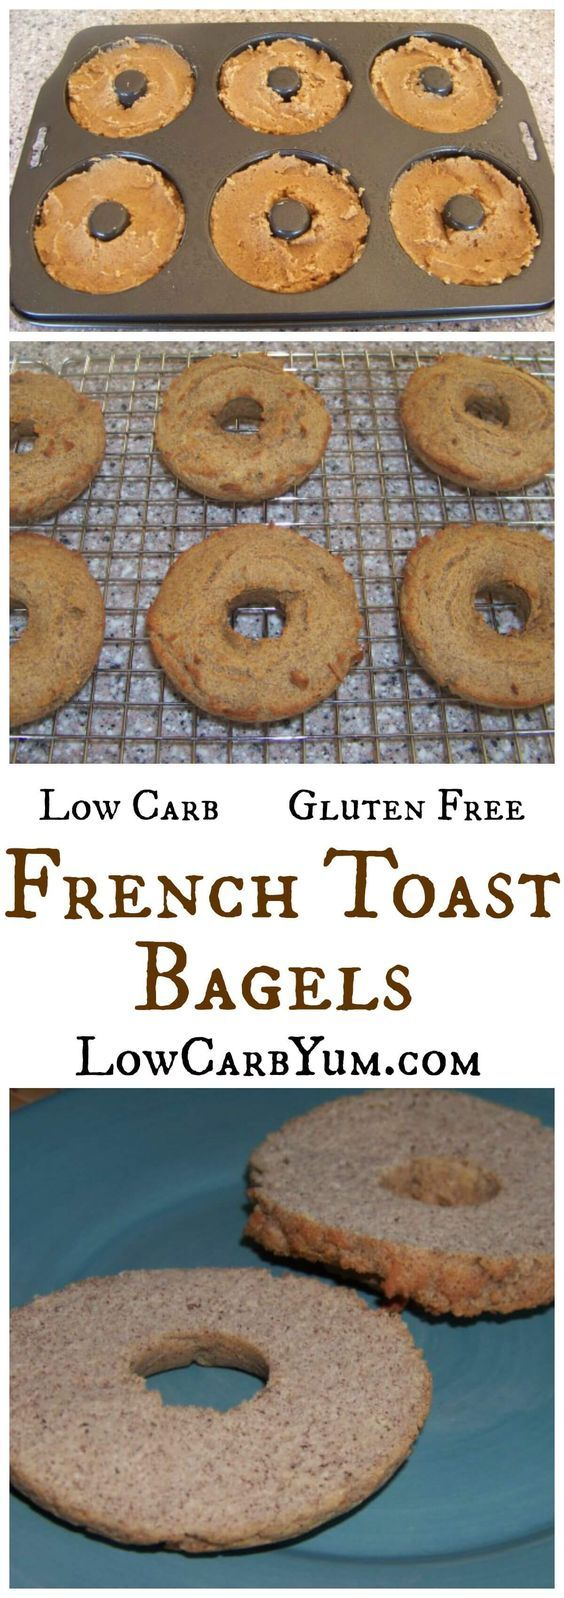 If you are missing your breakfast bagels, these gluten free low carb french toast bagels are a welcome addition. Just slice, toast, butter, and serve. LCHF Keto THM Banting Recipe